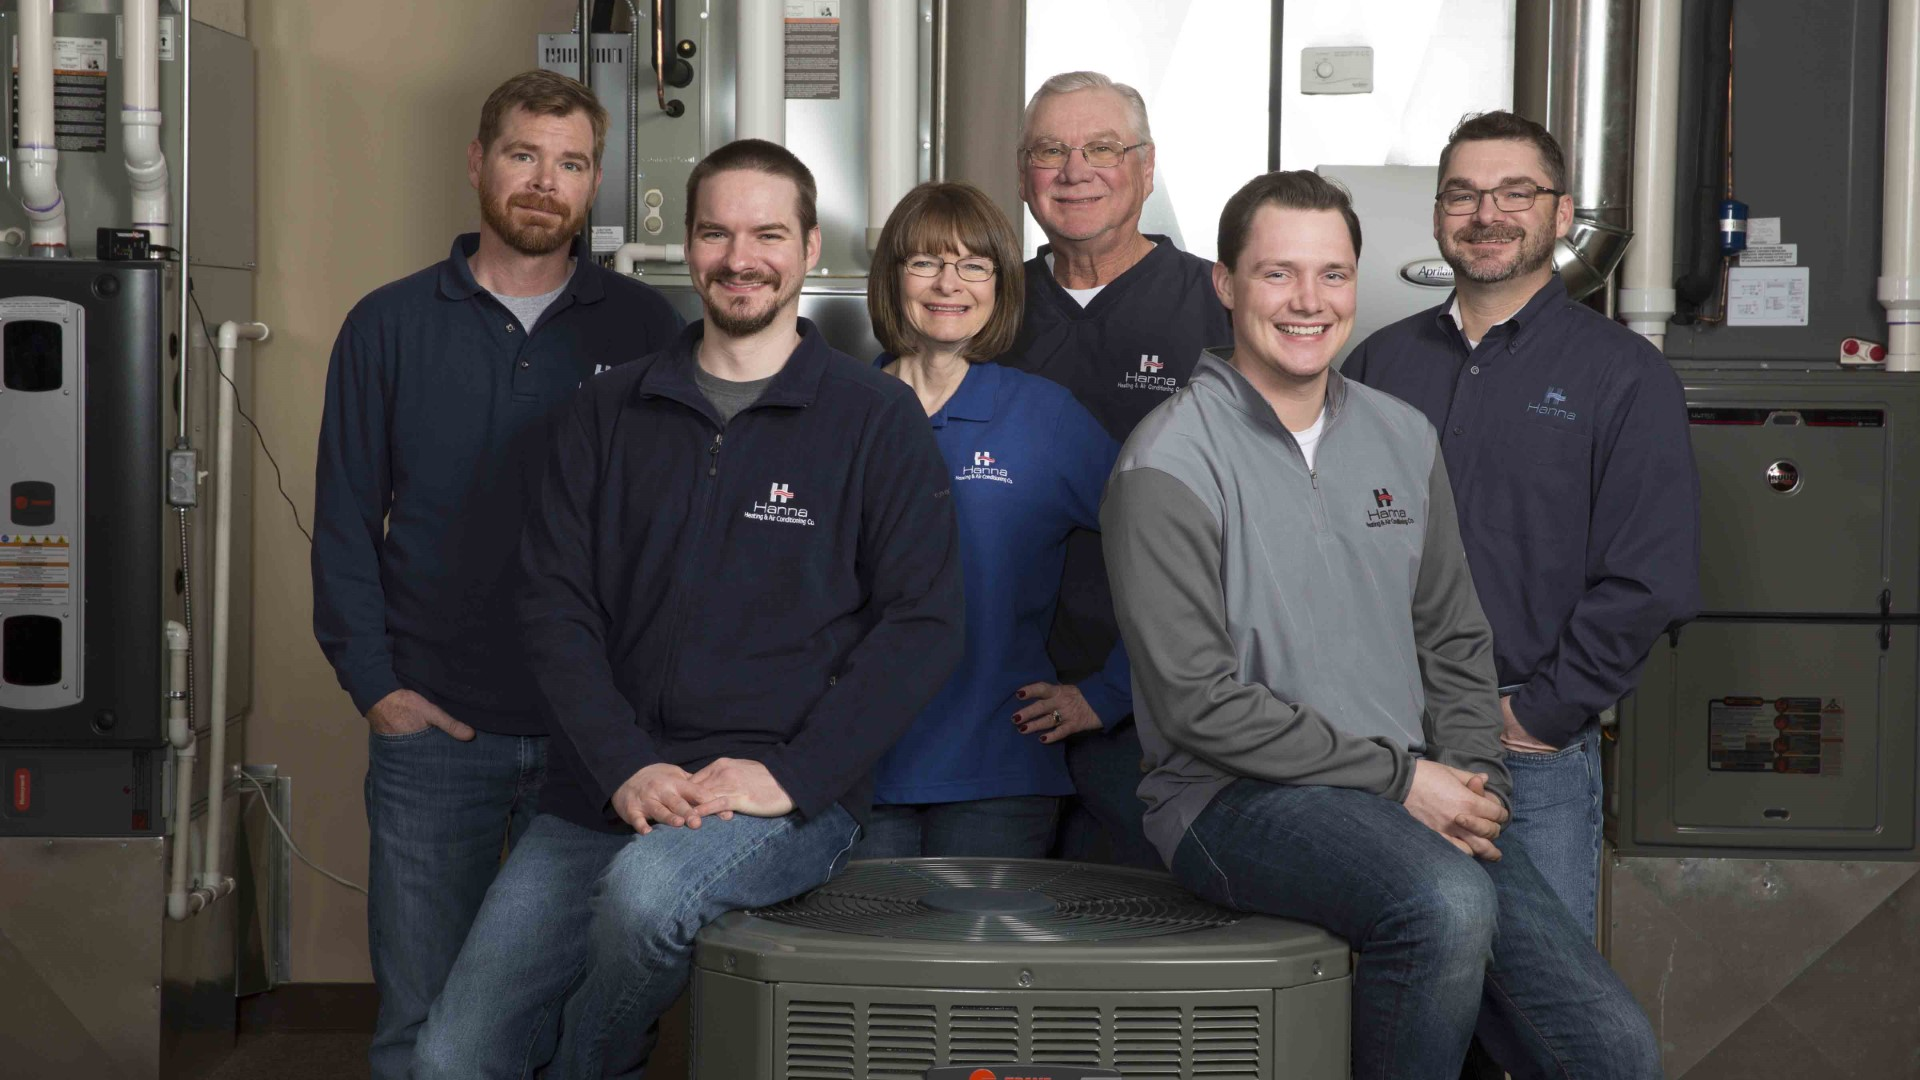 Hanna Heating & Air team of owners, managers and professional HVAC experts